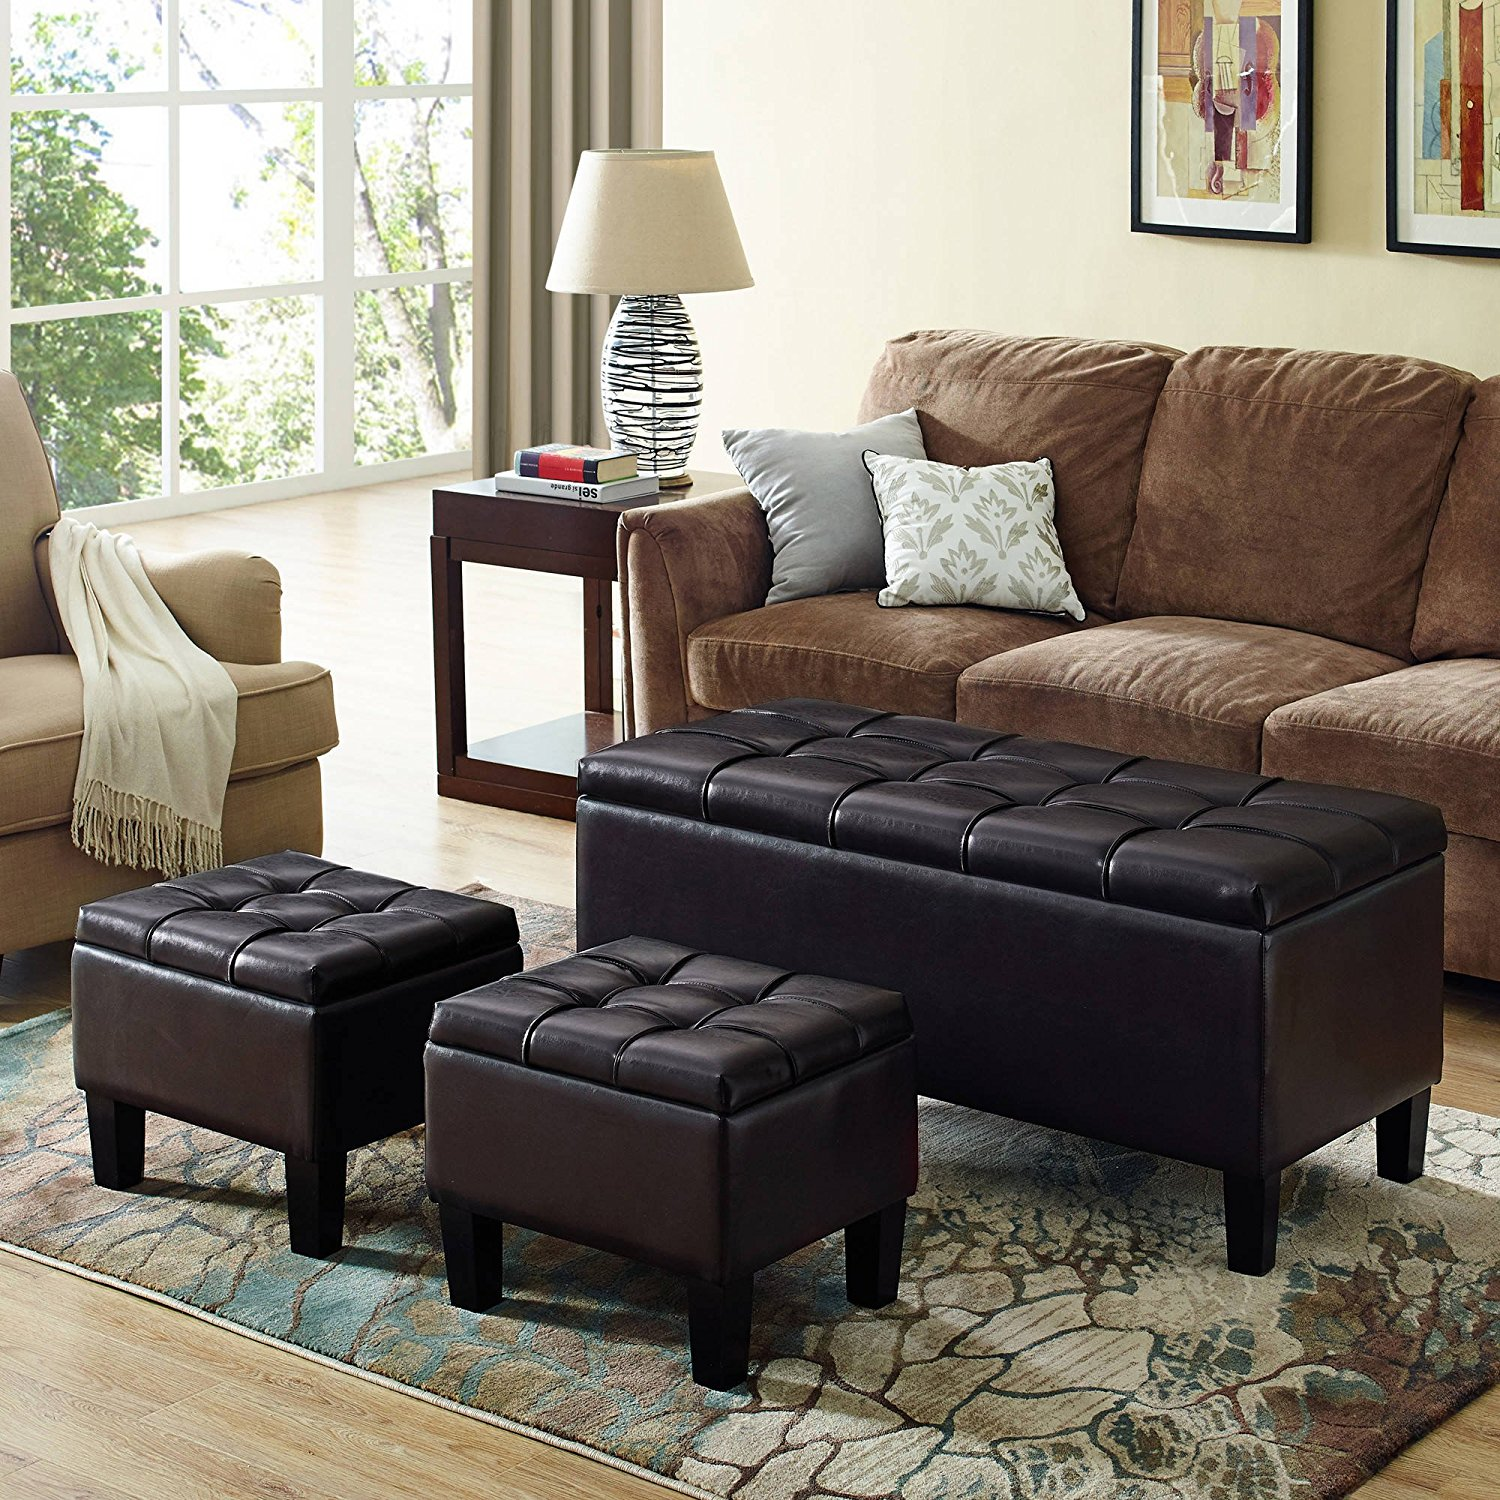 BMX Sea Mills 3-Piece Rectangular Storage Ottoman Bench, made from durable Brown Faux Leather, extra-strong and durable, a beautiful pleated stitched leather exterior, Wood frame construction.